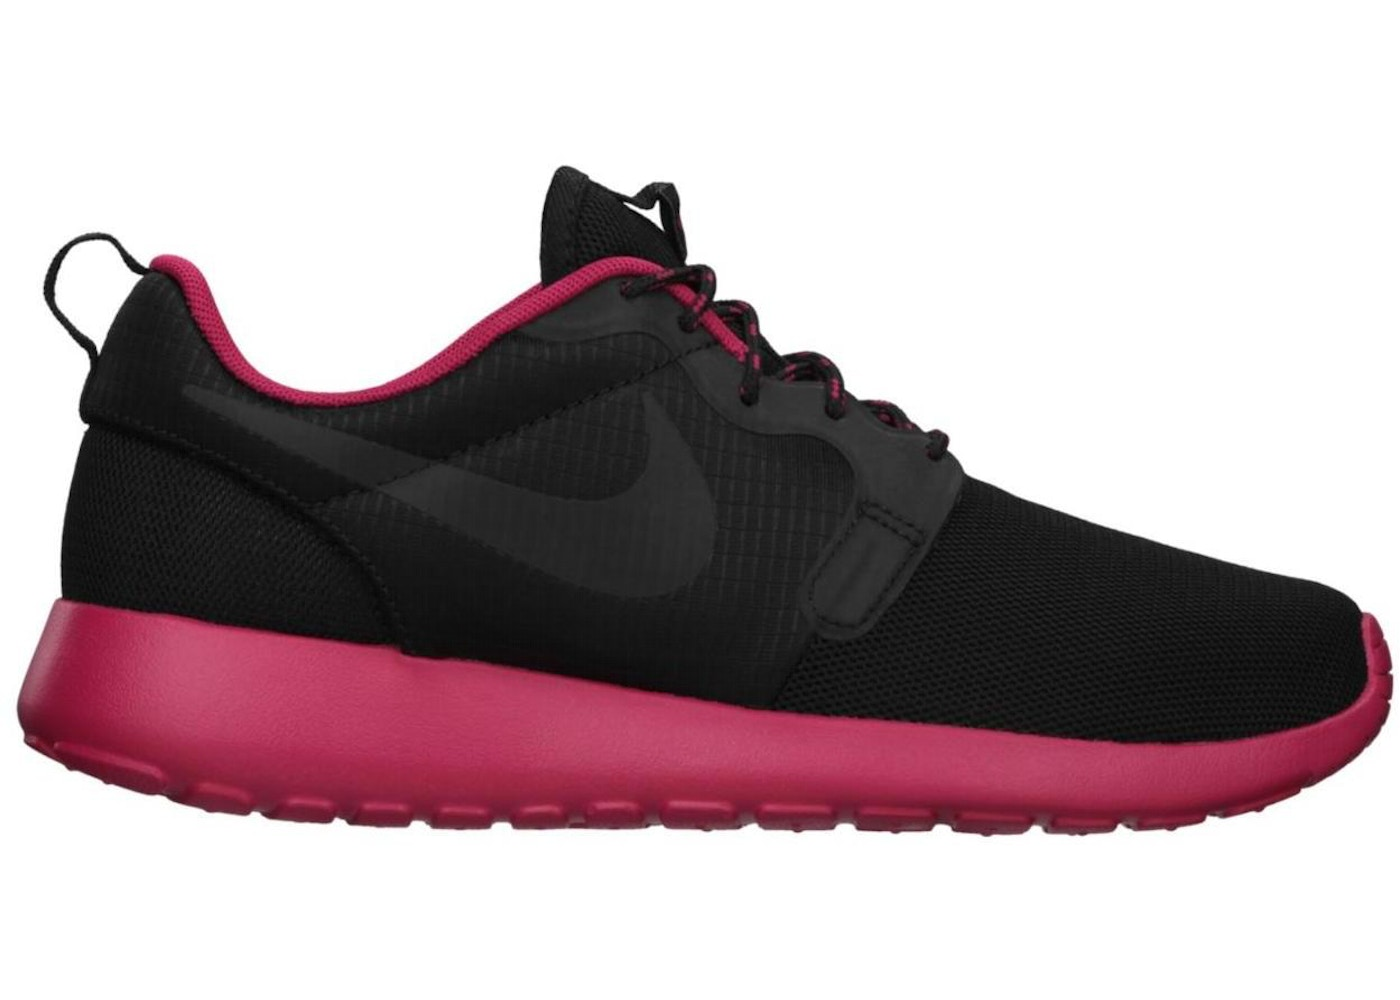 best service a847a 9ecb7 Nike Roshe Run Hyperfuse Fuchsia (GS) - 642233-601